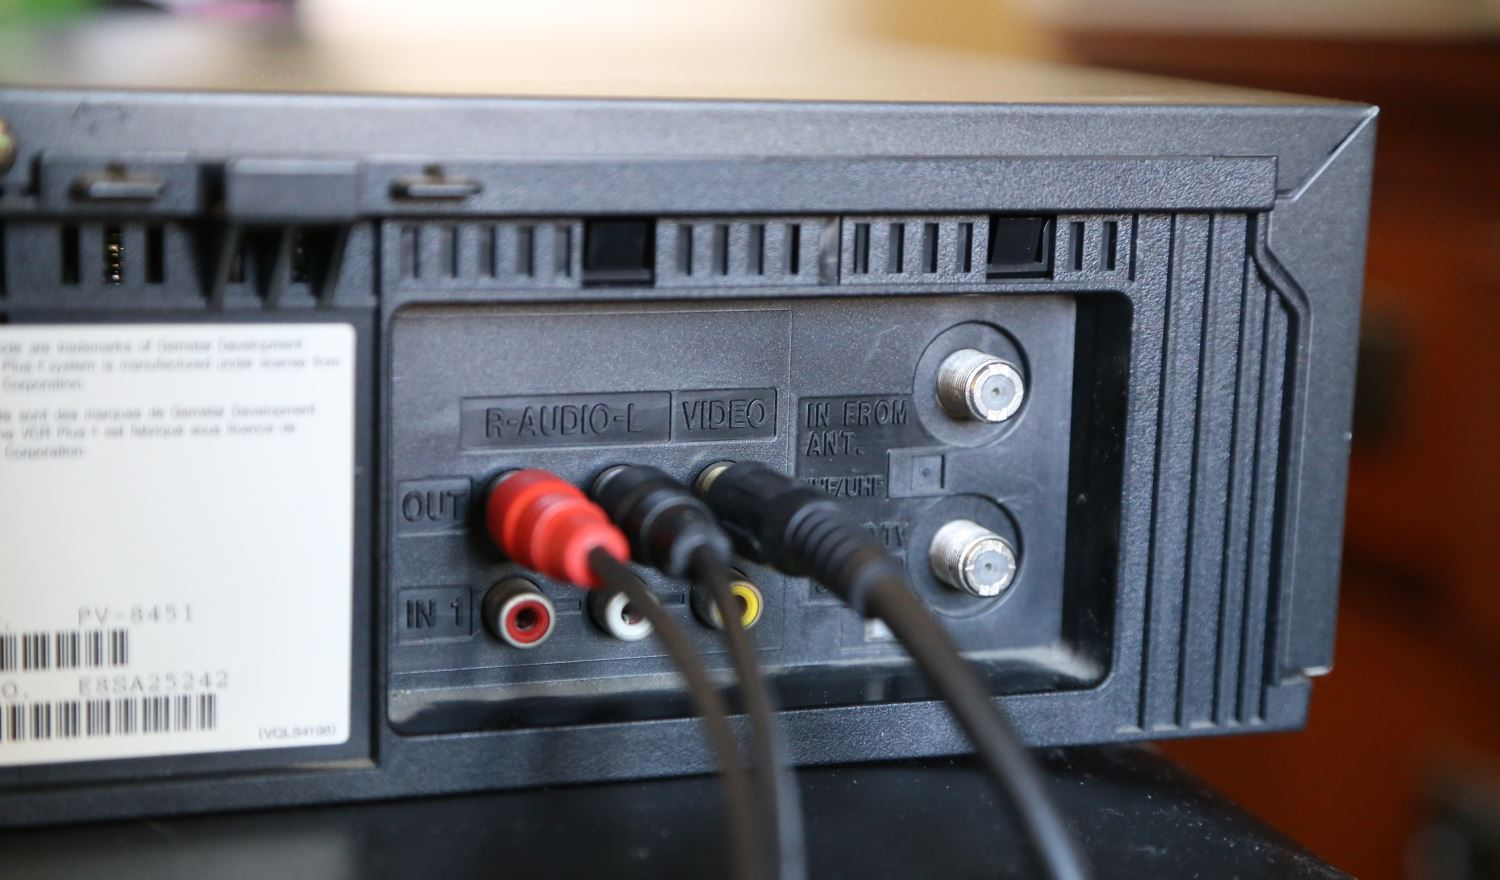 VCR connections